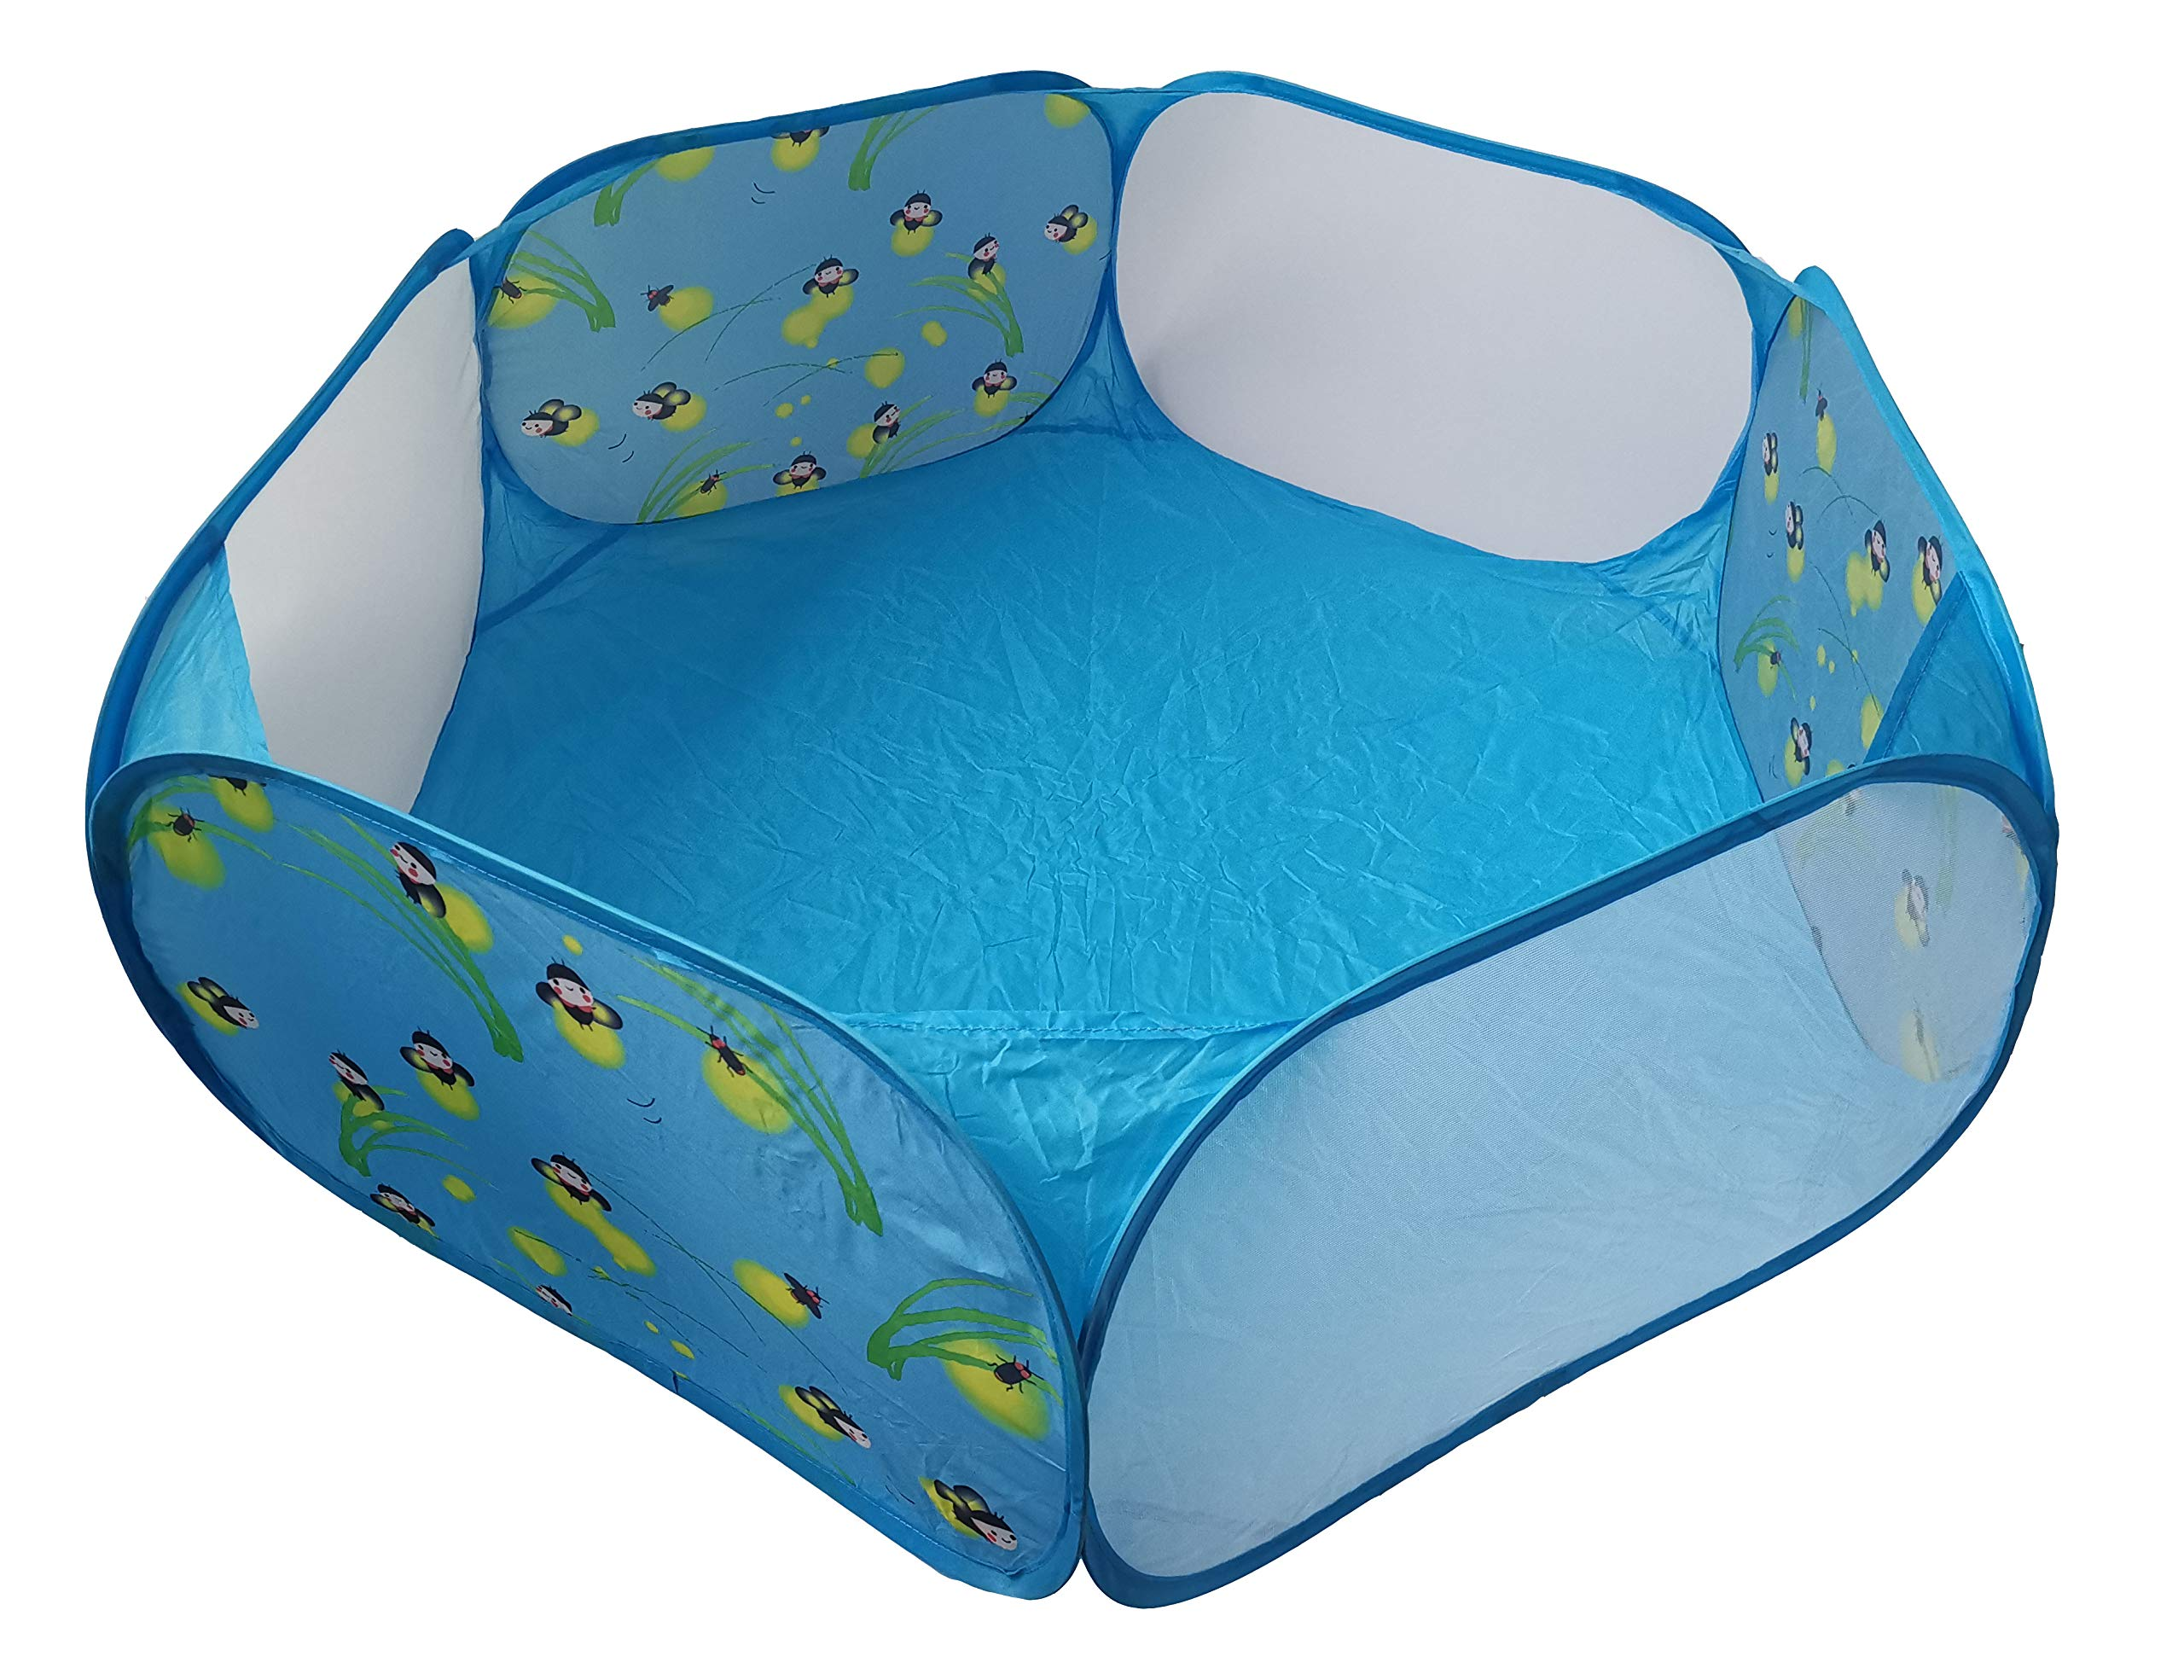 WOWOWMEOW Pop Open Small Animals Exercise Playpen Portable Outdoor Pets Fence for Guinea-Pigs, Hamster, Chinchillas and Hedgehogs (1.2M, Blue-Firefly) by WOWOWMEOW